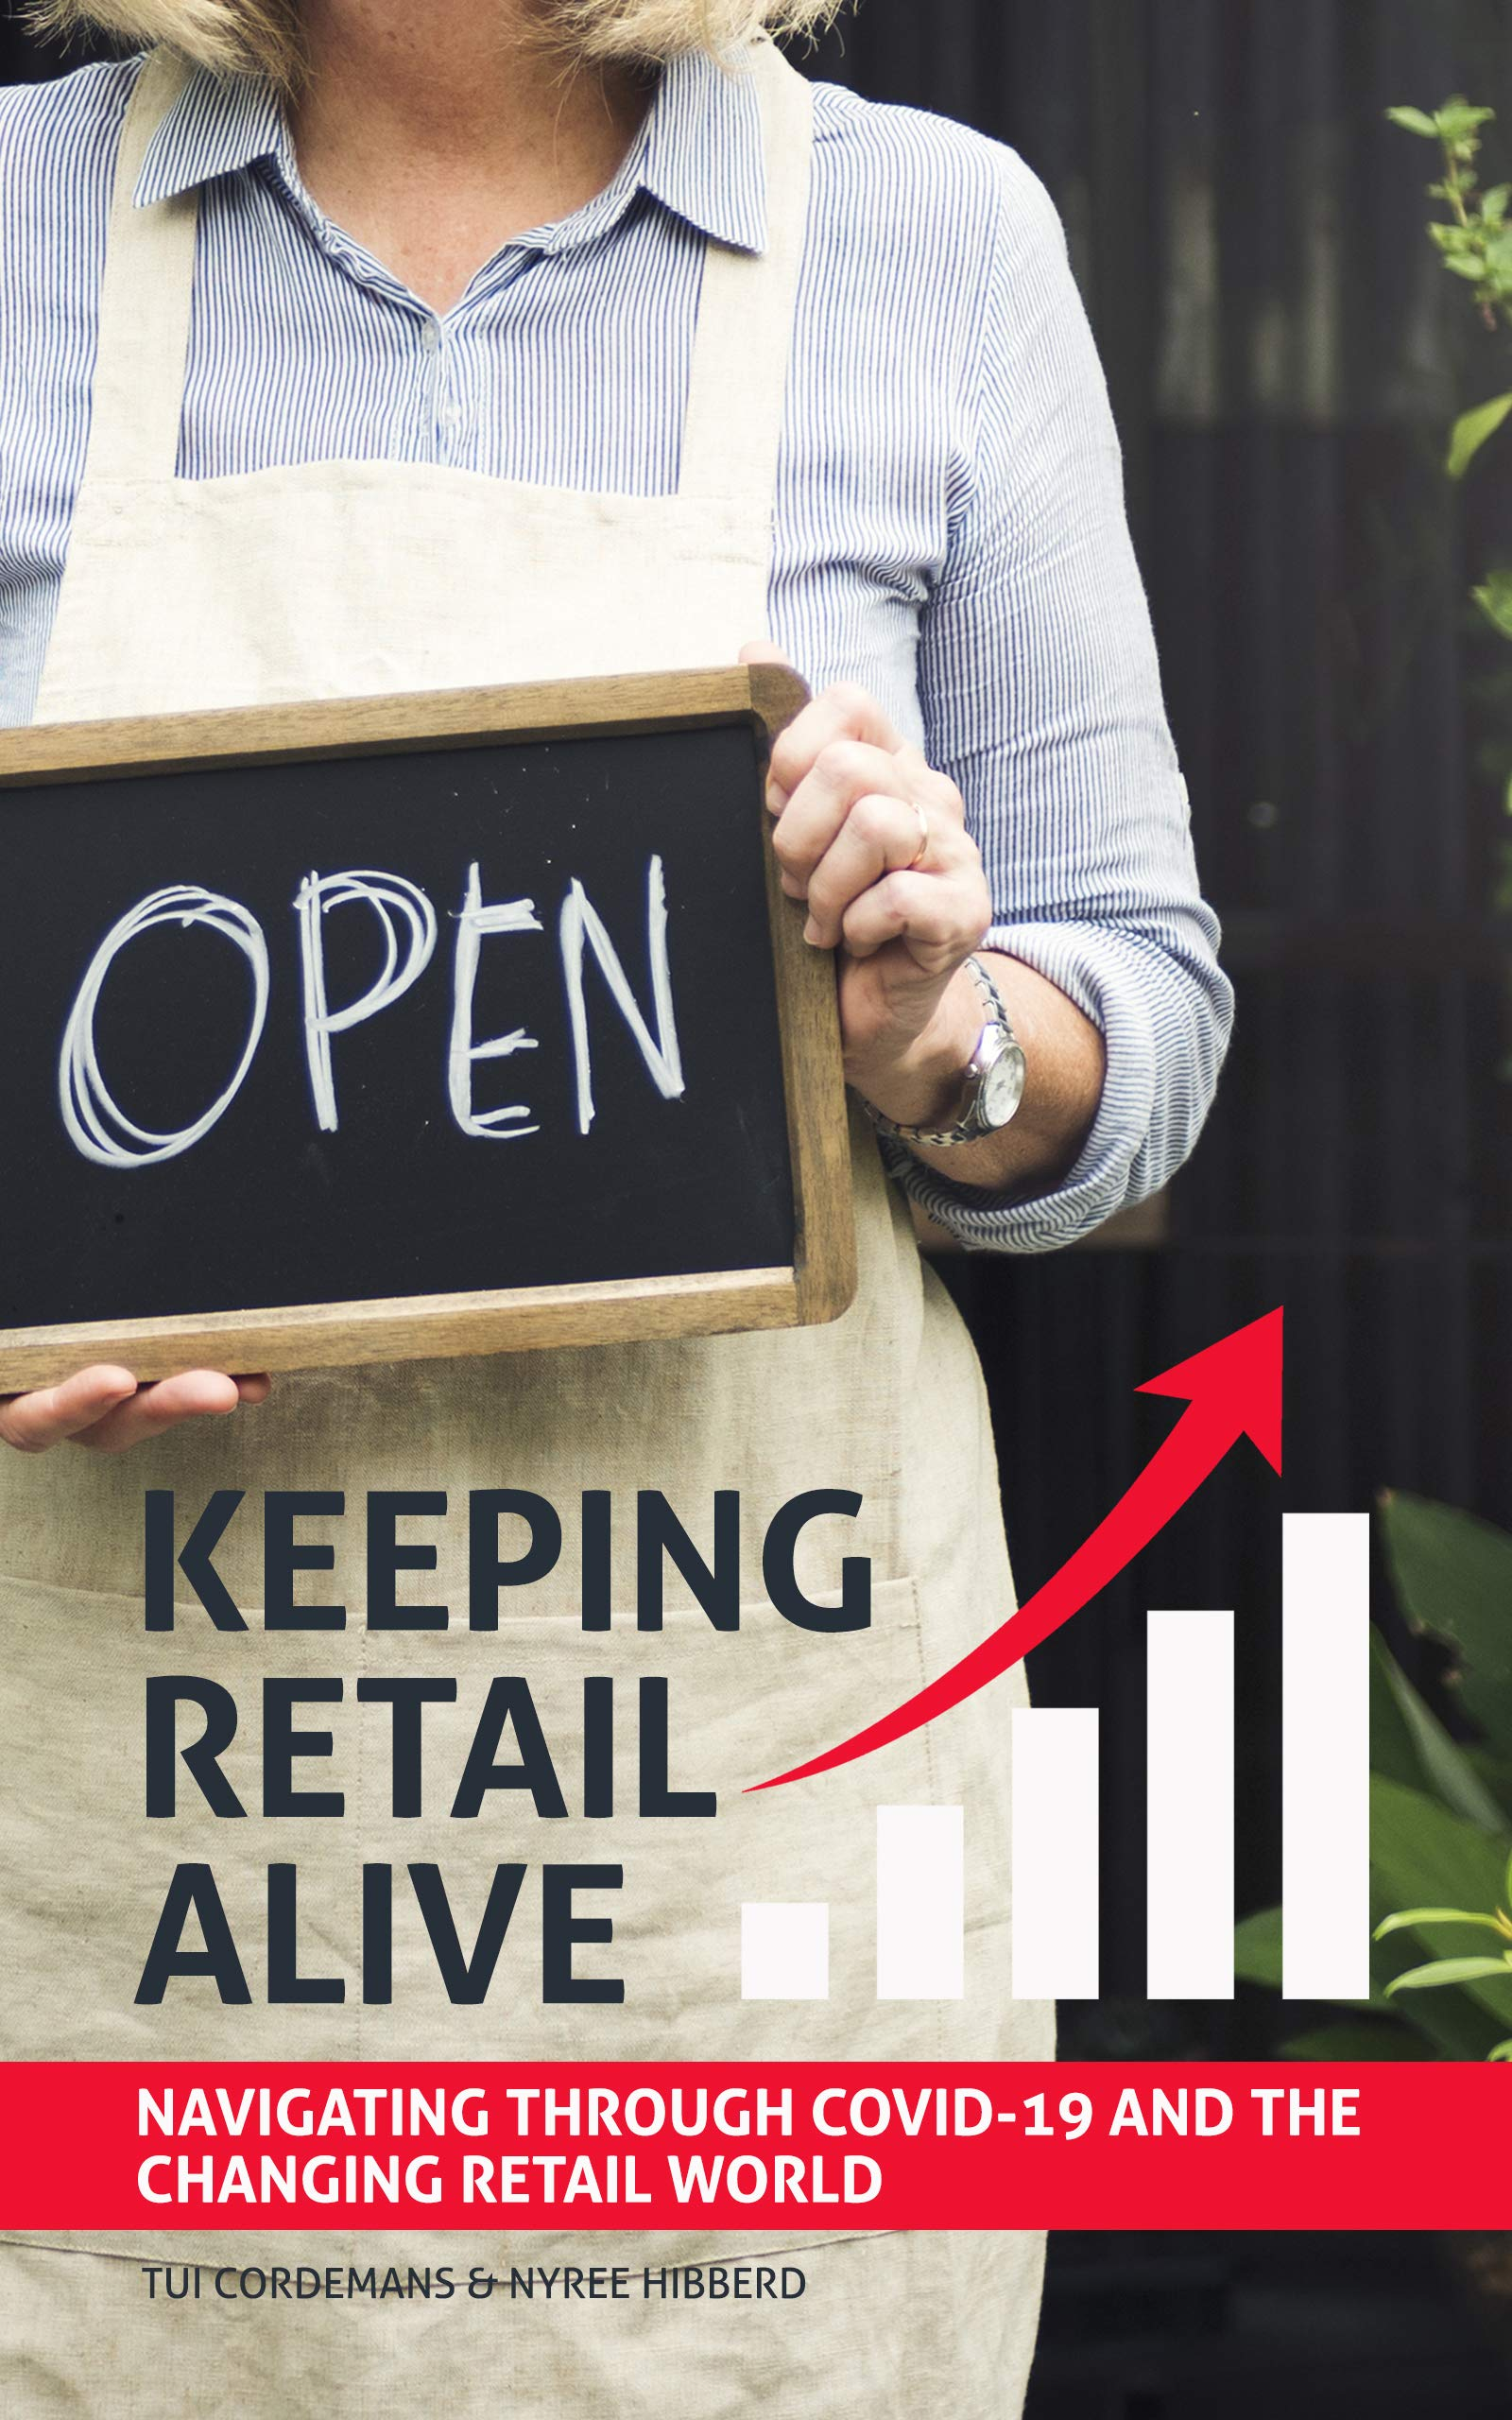 Keeping Retail Alive: Navigating Through COVID-19 and the Changing Retail World